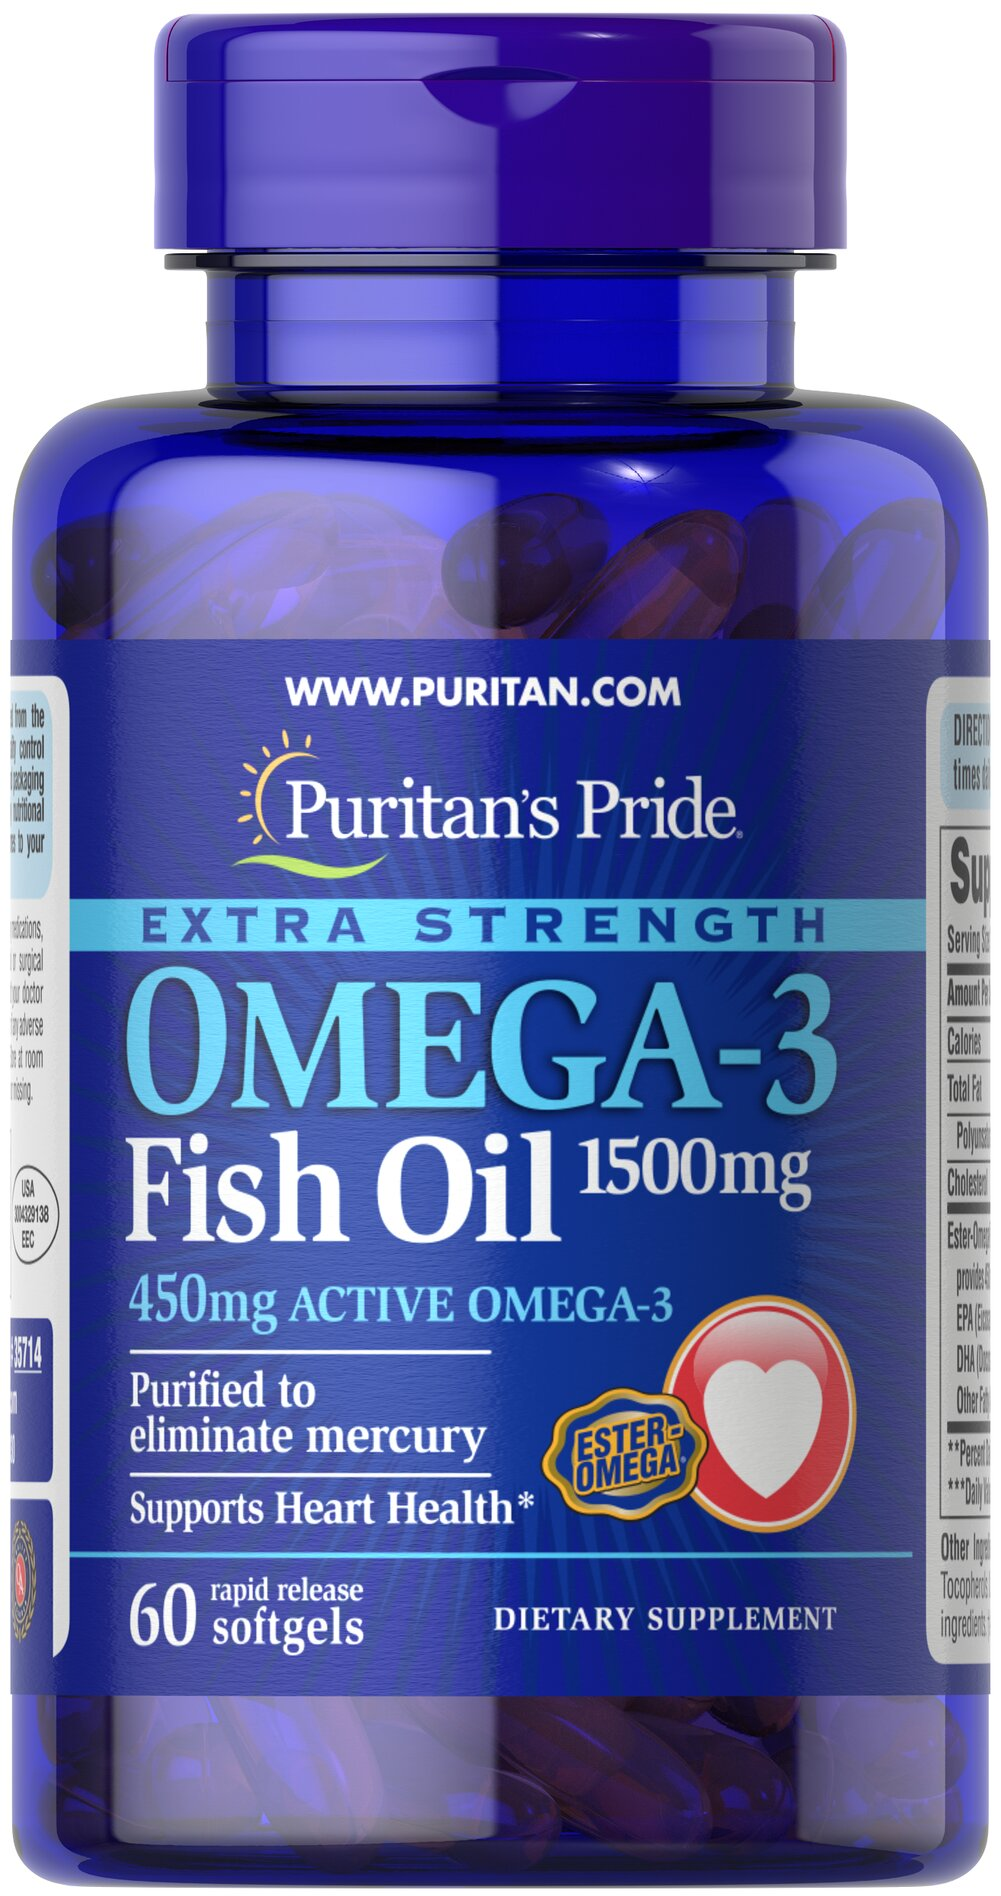 Extra Strength Omega-3 Fish Oil 1500 mg (450 mg Active Omega-3) Thumbnail Alternate Bottle View